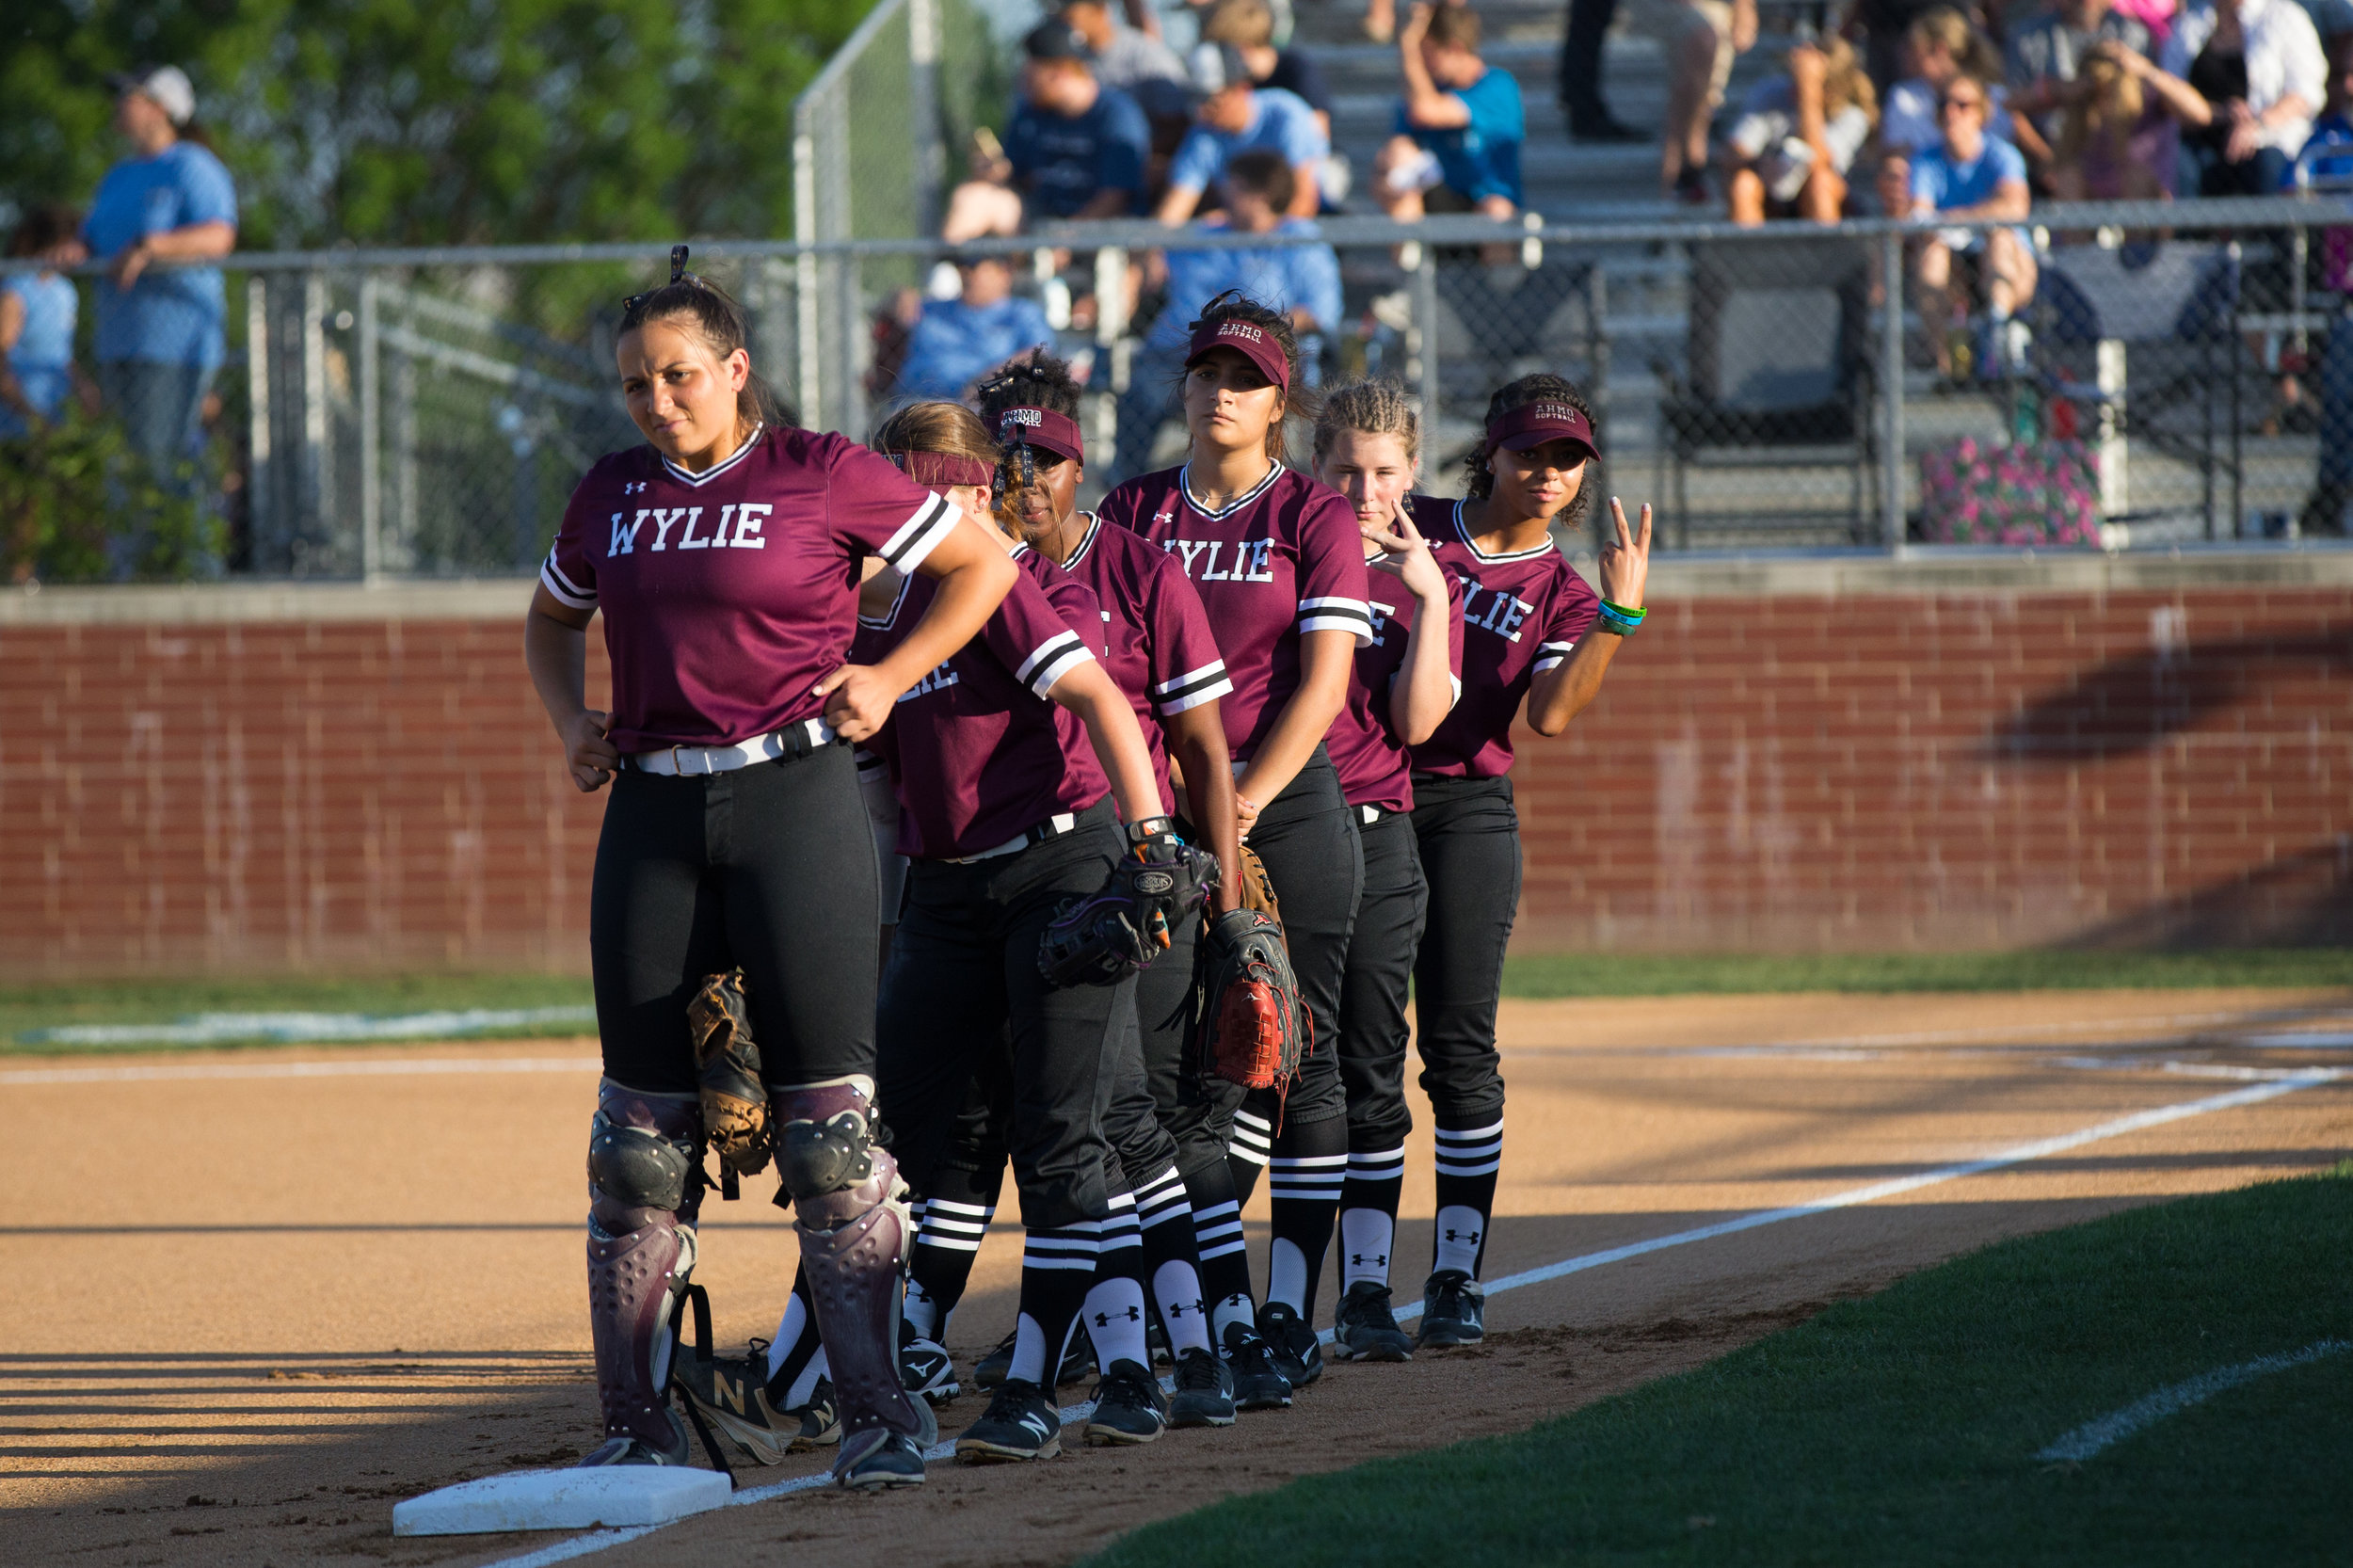 5_18 Wylie Softball-112.jpg